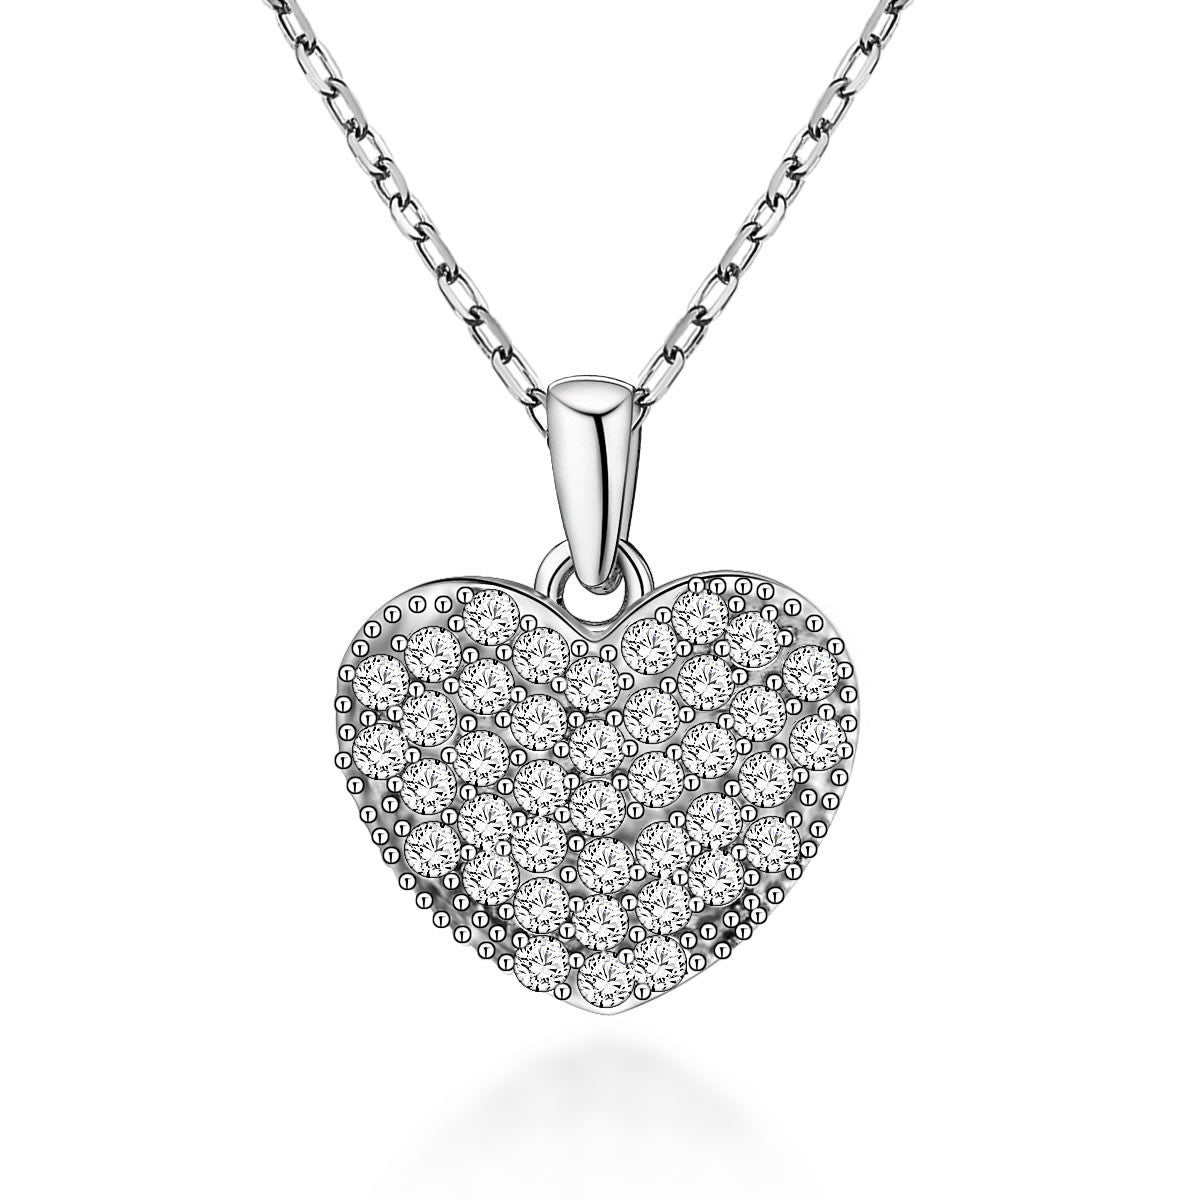 Cute Heart-shaped Design 925 Sterling Silver Pendant Necklace for Women E061687001